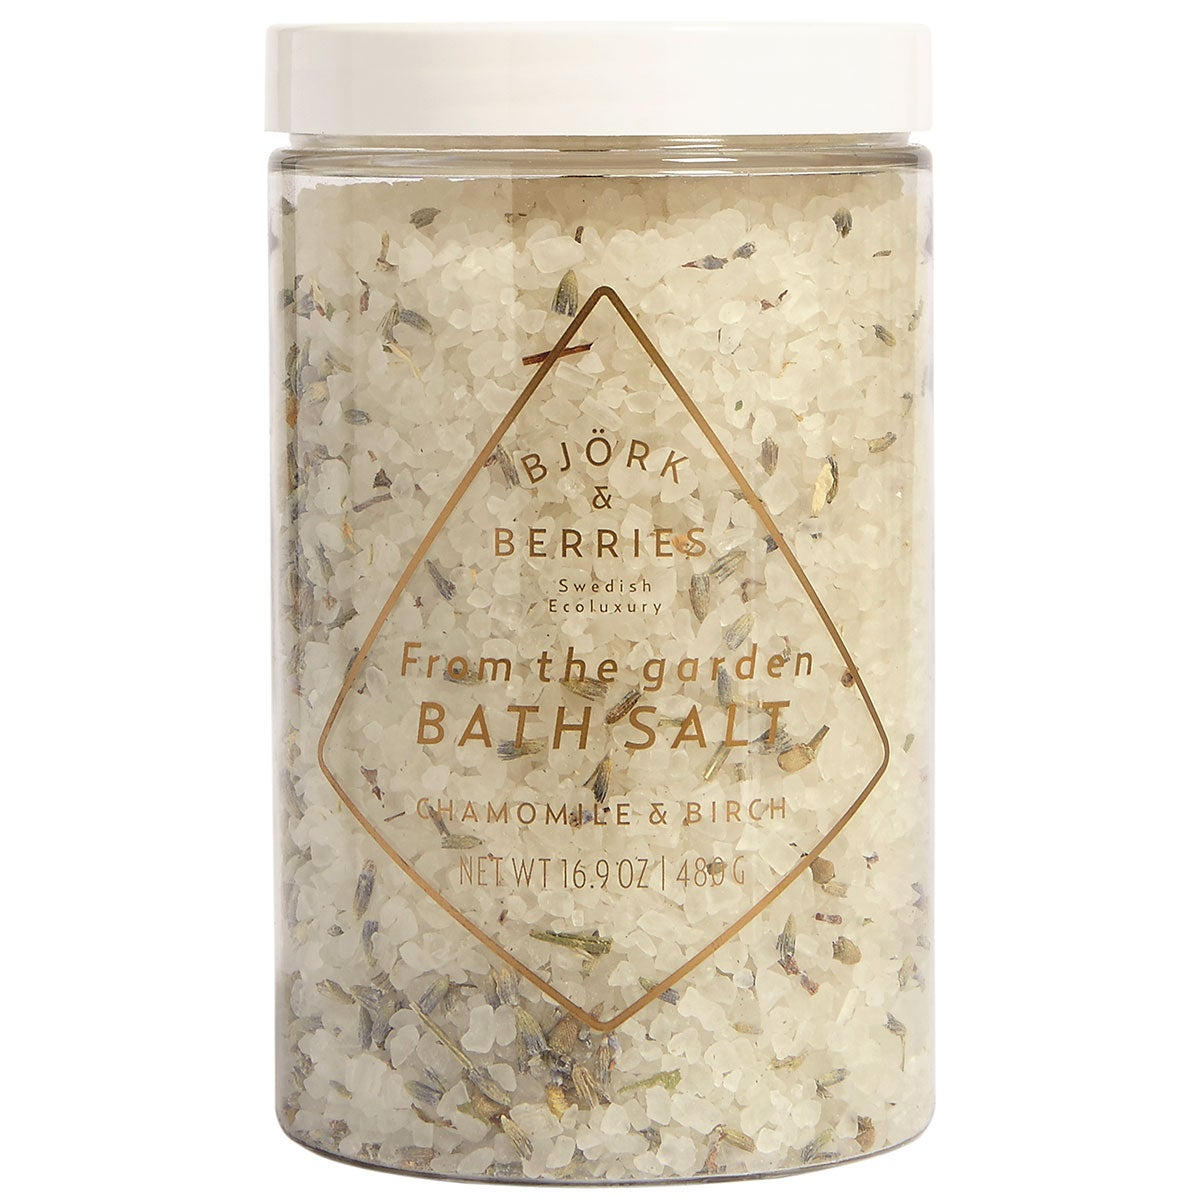 Björk & Berries Bath Salt From the Garden